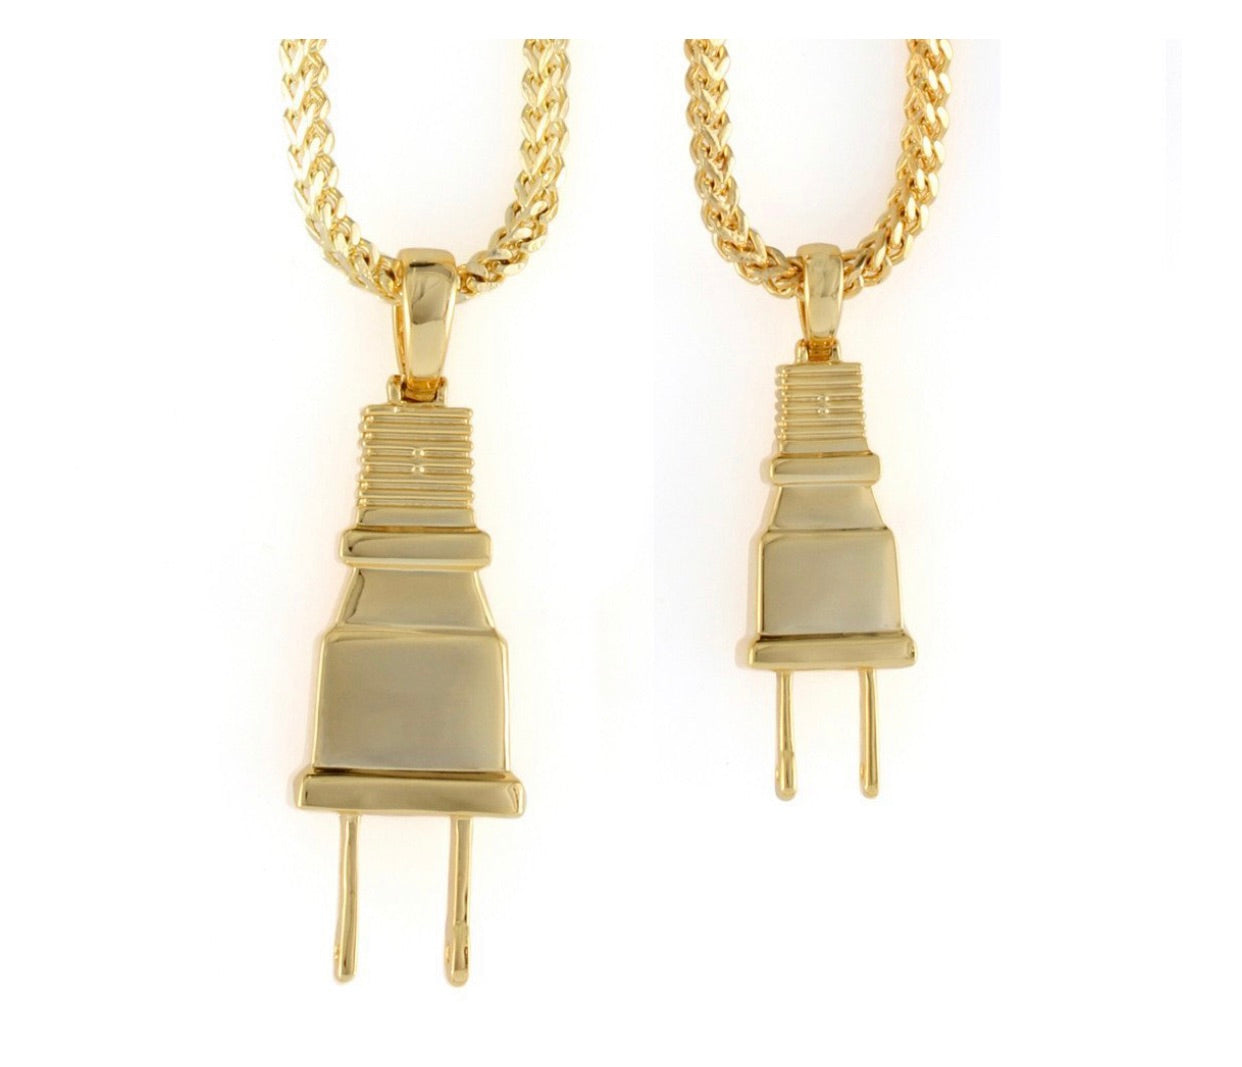 14K Gold Plug Necklace - A&M